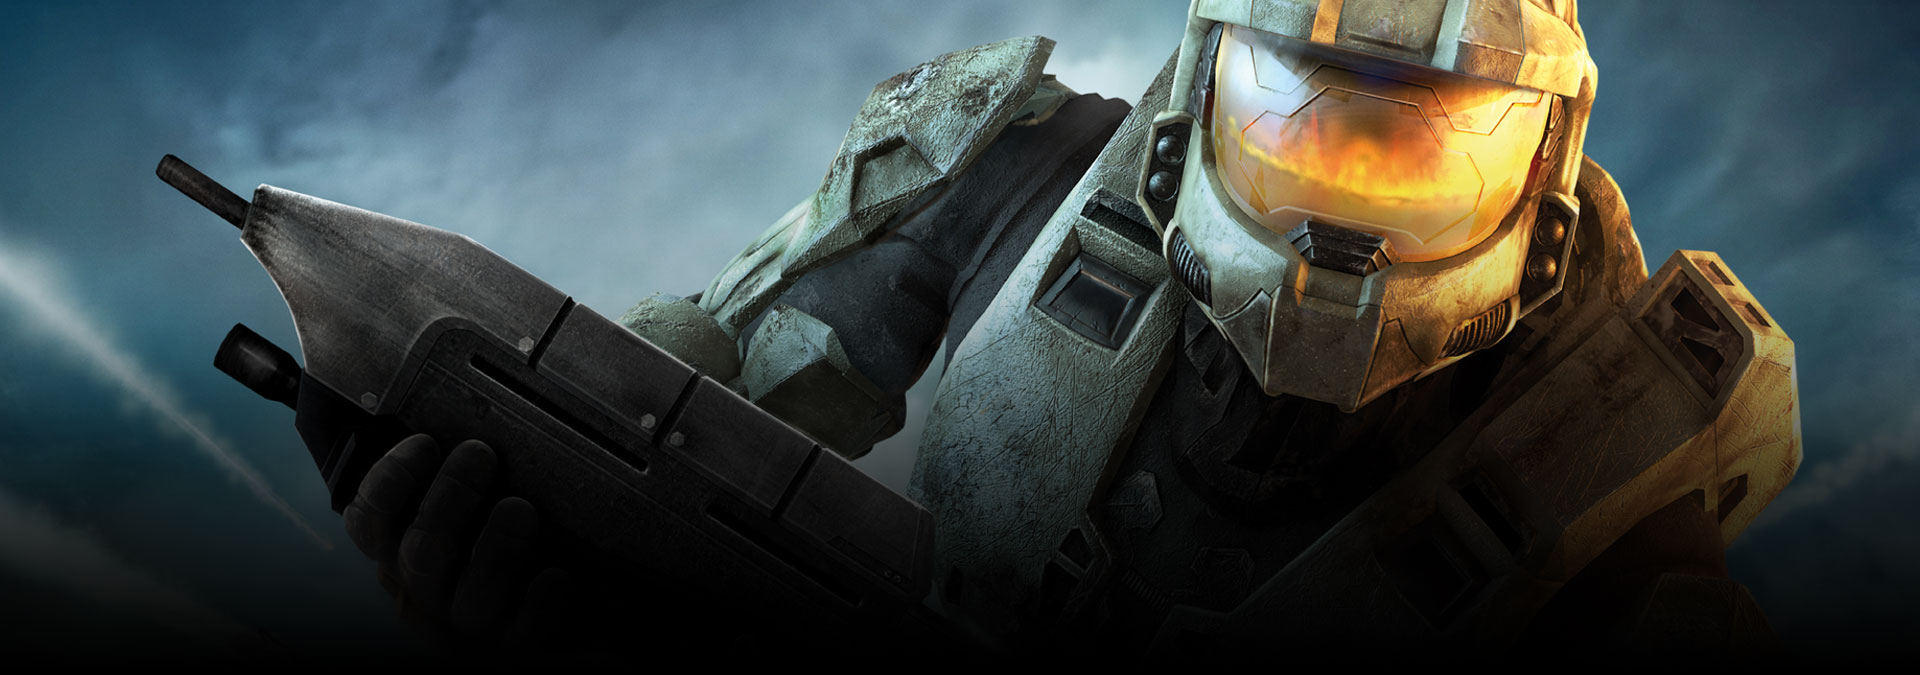 Most Viewed Halo 3 Wallpapers 4k Wallpapers